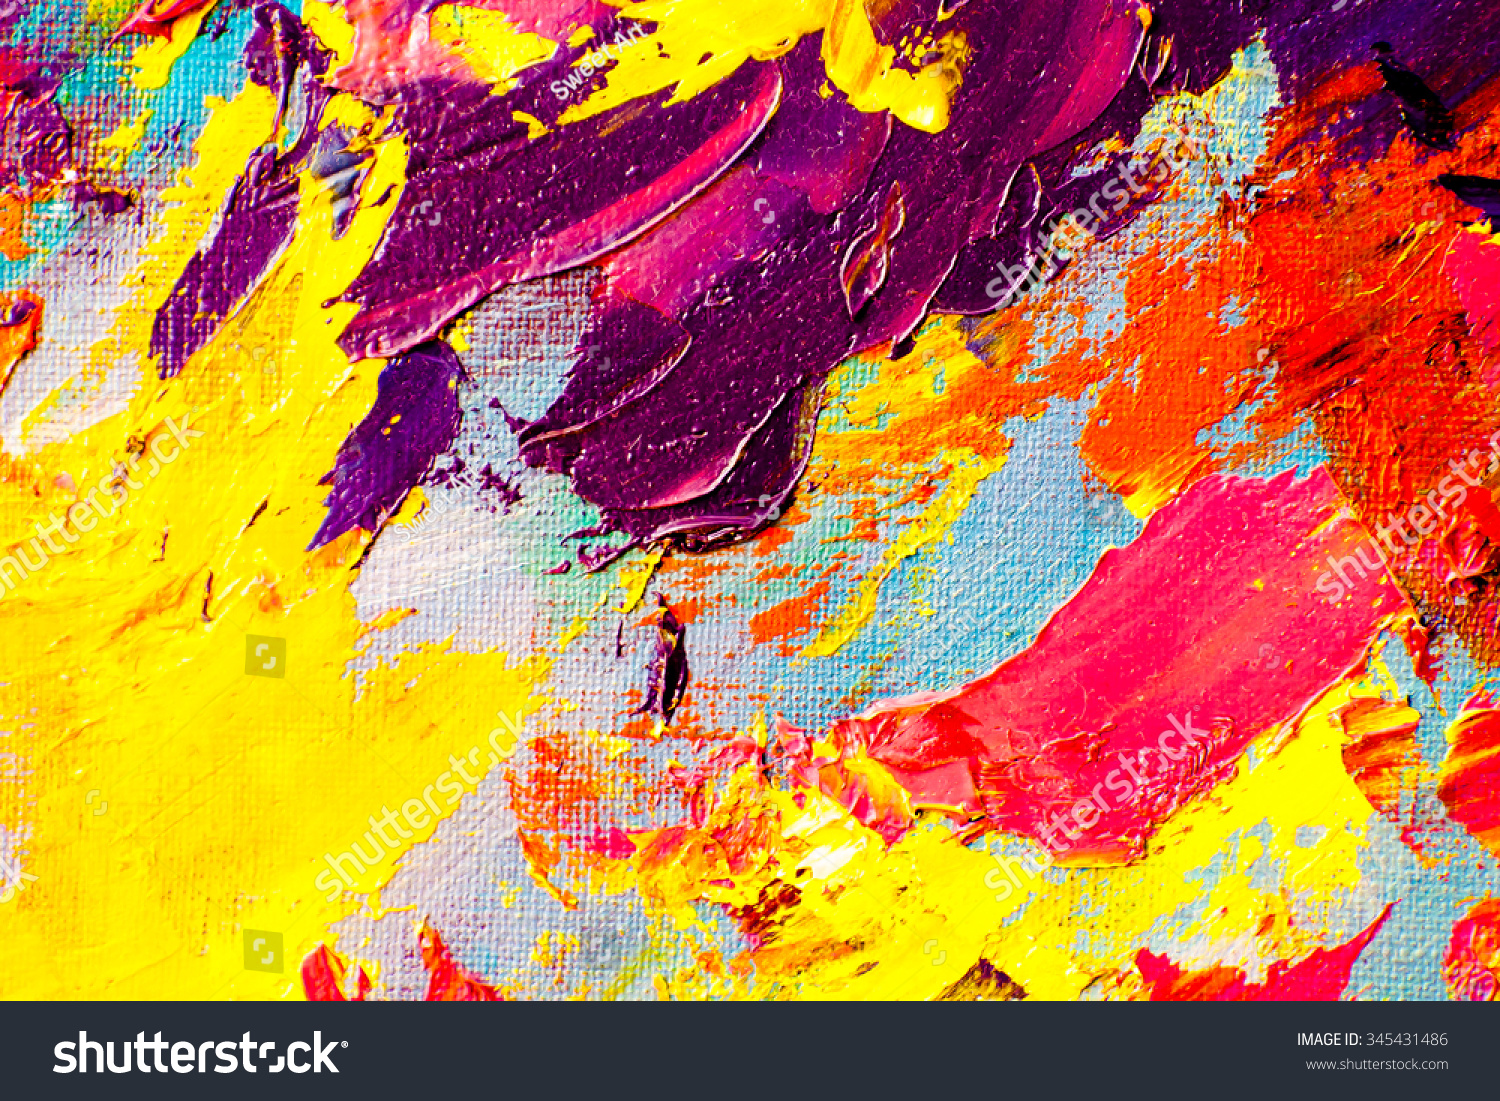 Abstract Art Background. Oil Painting On Canvas. Color Texture